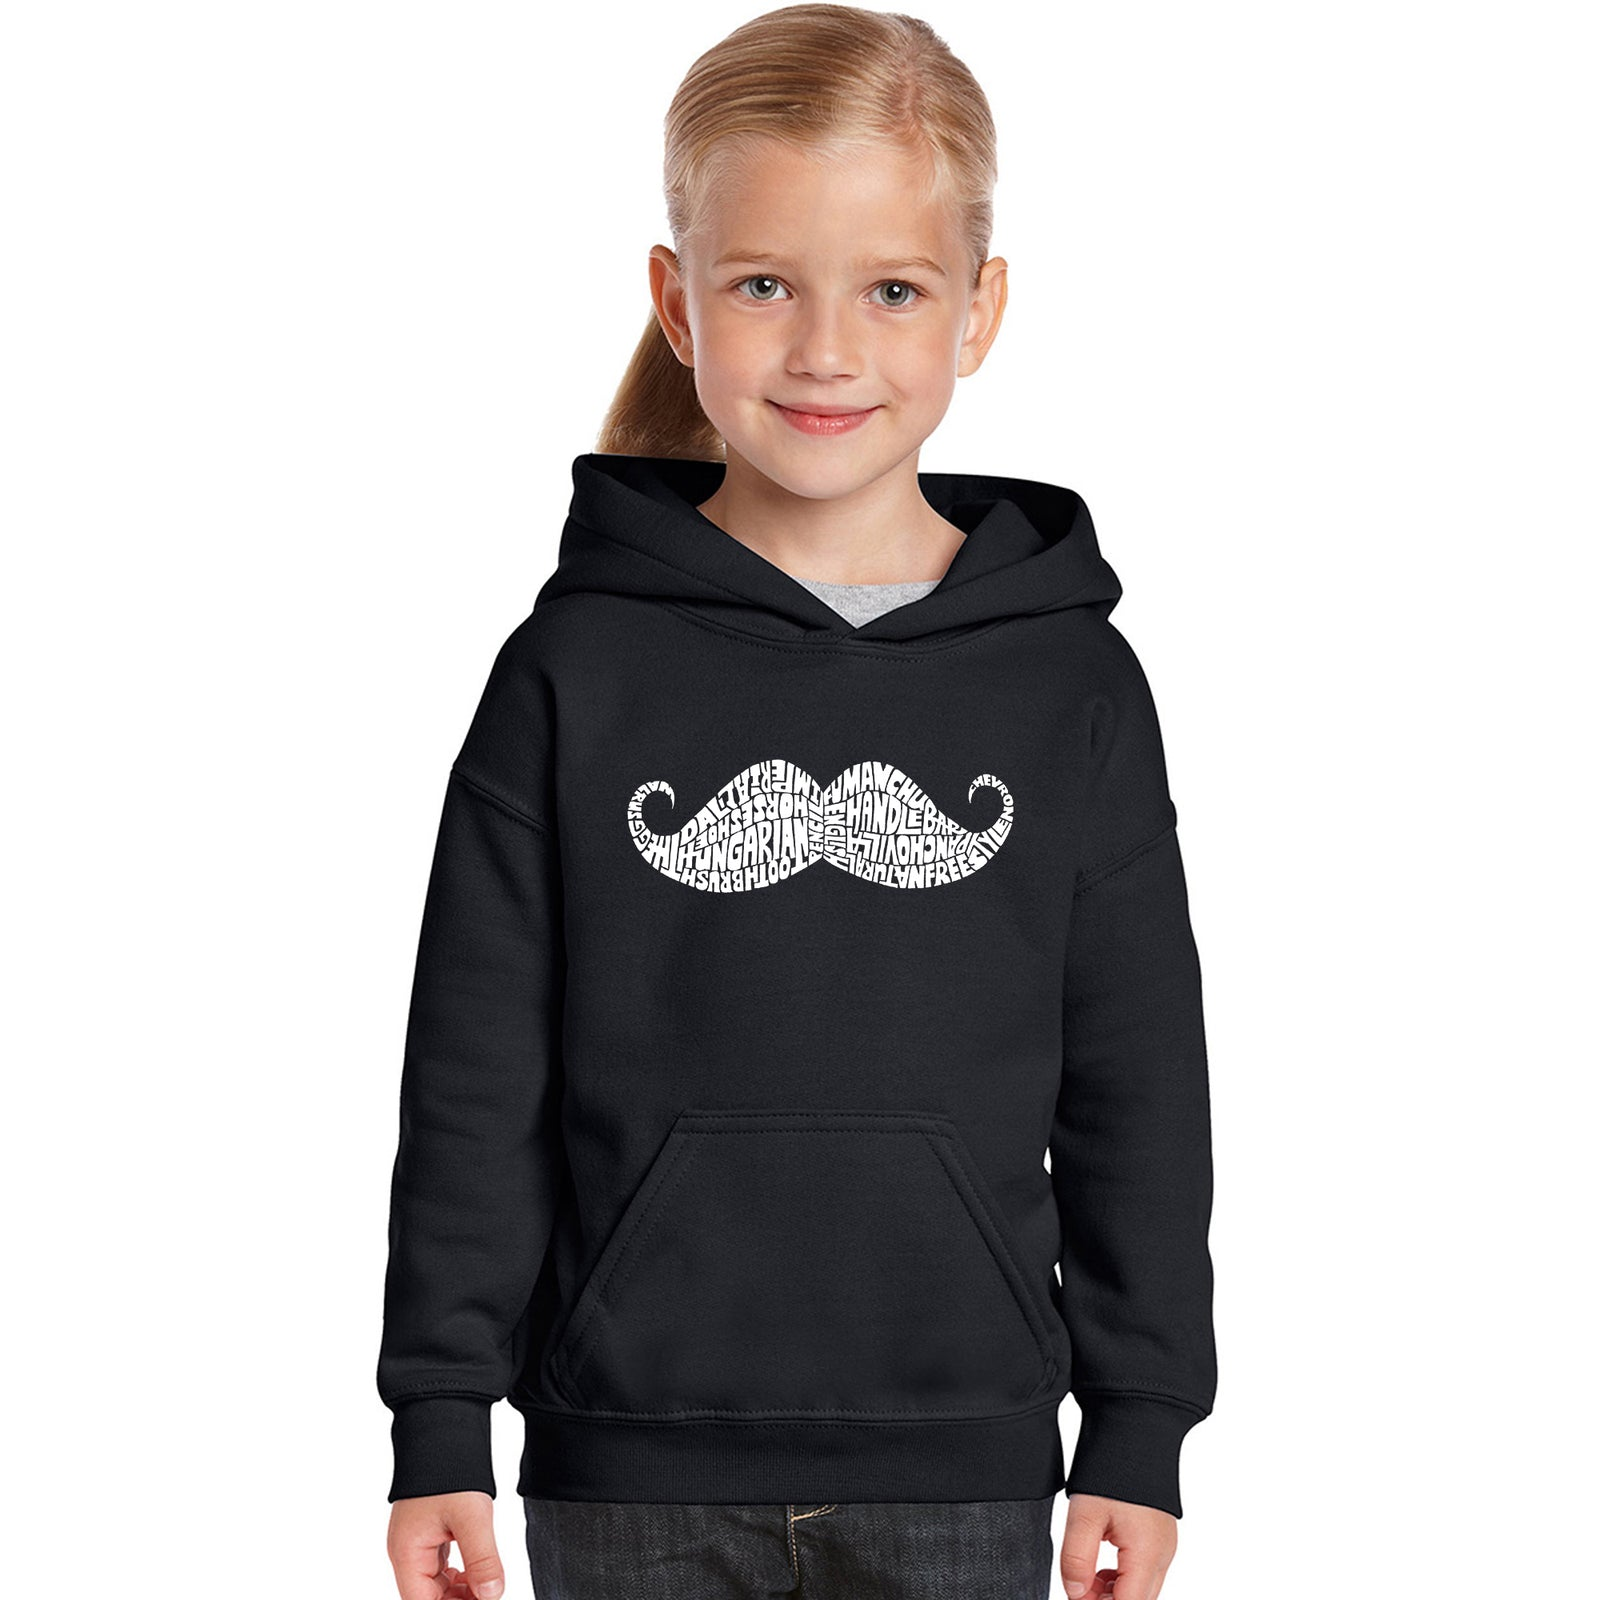 Girl's Hooded Sweatshirt - WAYS TO STYLE A MOUSTACHE